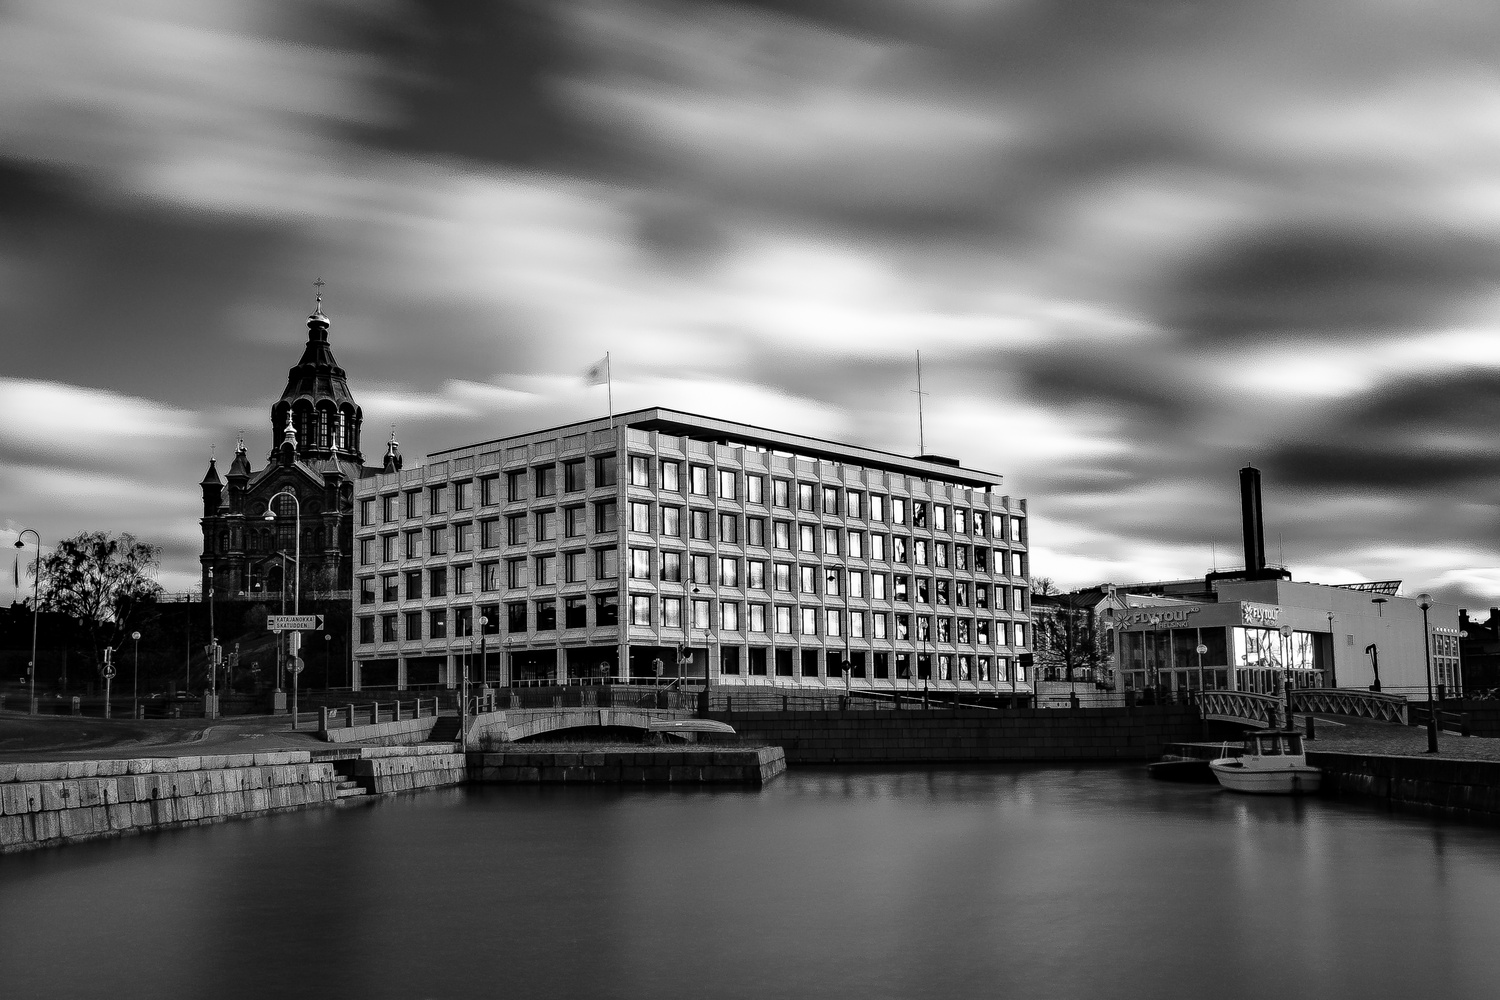 Helsinki Long Exposure by andrew audley